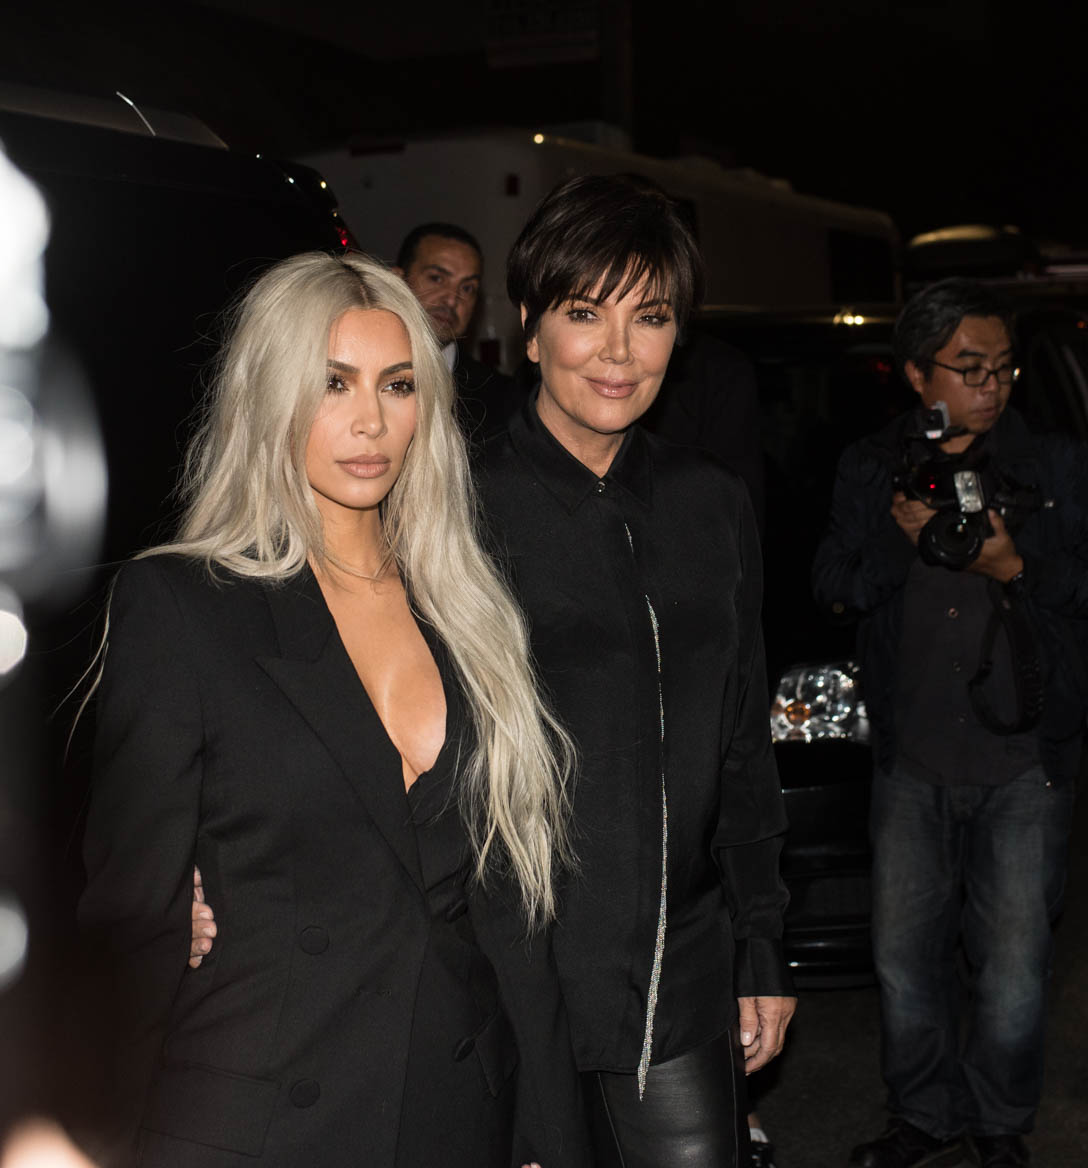 Kim Kardashian West and mother Kris Jenner arriving at Alexander Wang's WANGFEST 2017